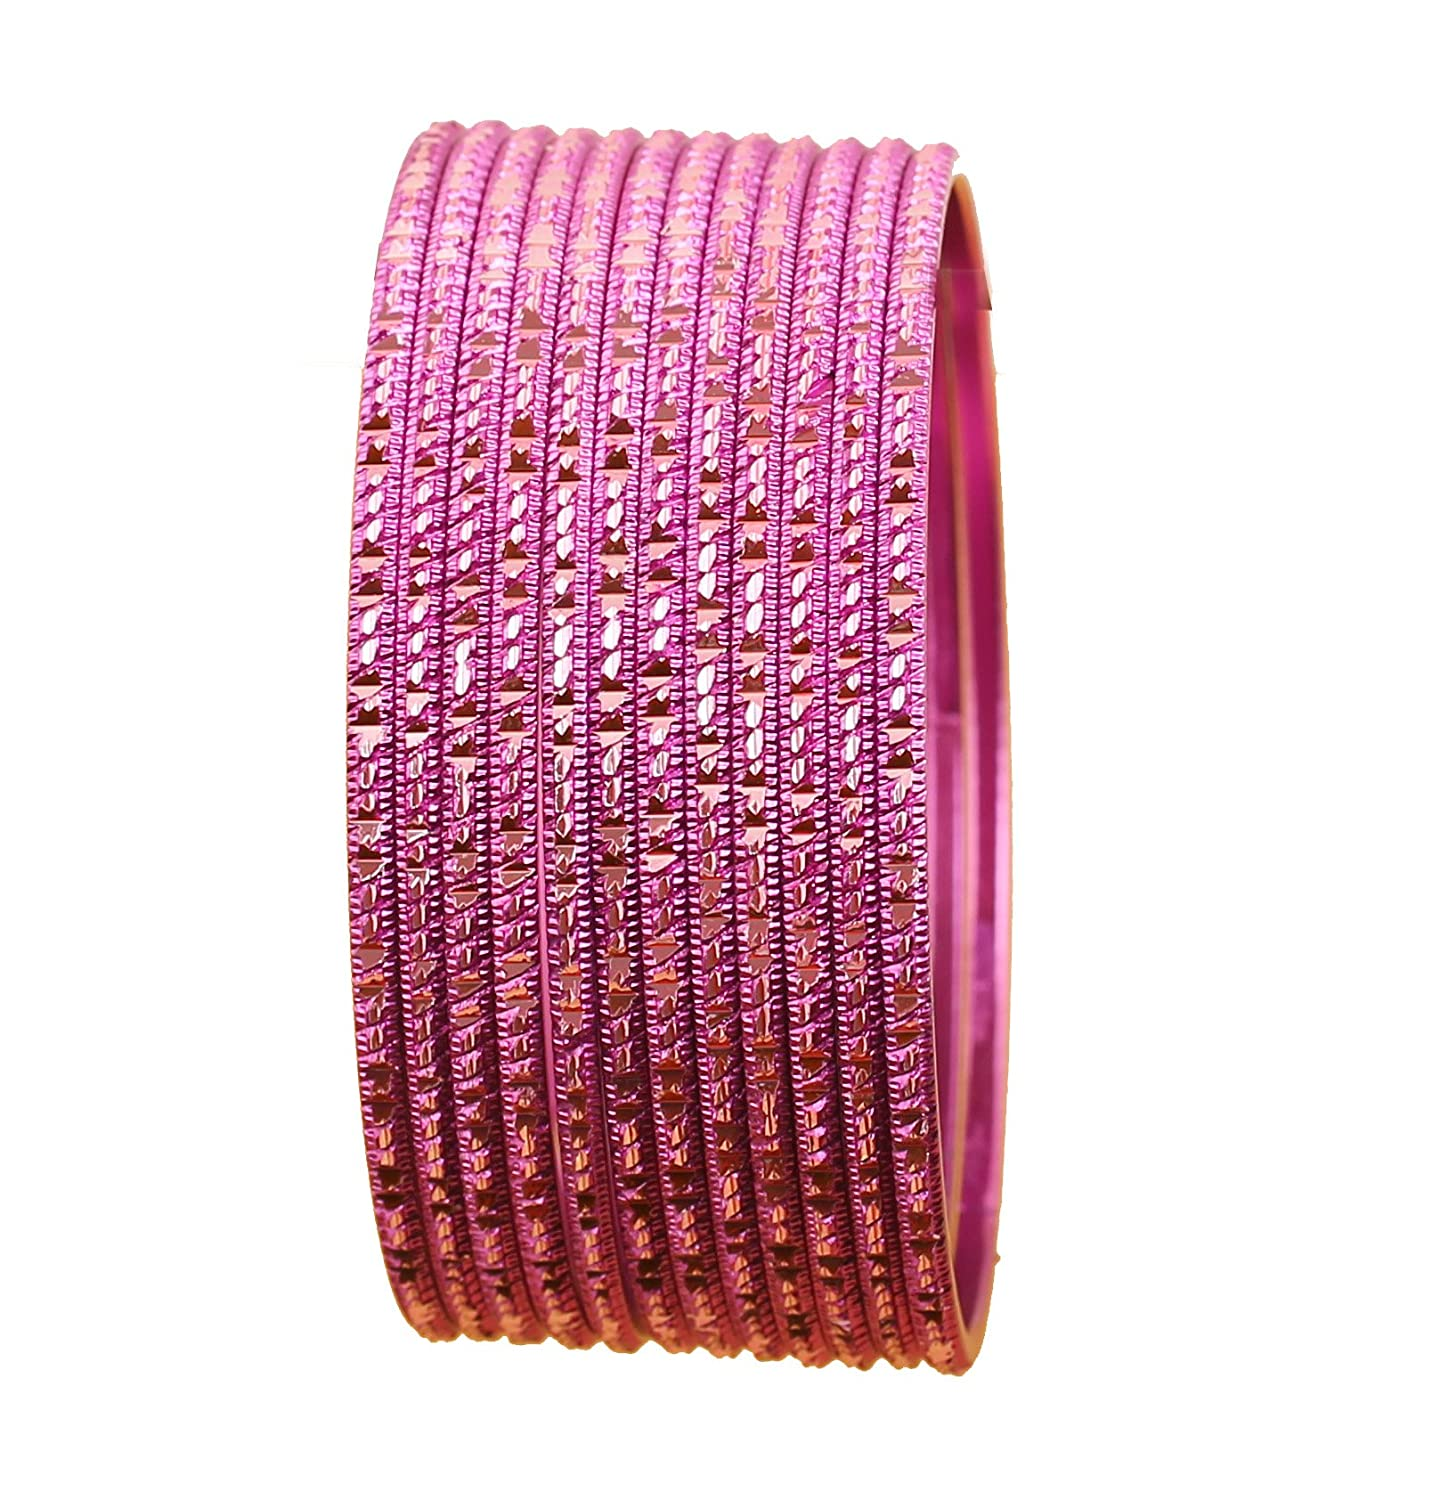 Set of 12. Touchstone Colorful Dozen Bangle Collection Traditional Charming Look Textured Sweet Sound Thin Indian Bollywood Designer Jewelry Metal Bangle Bracelets for Women